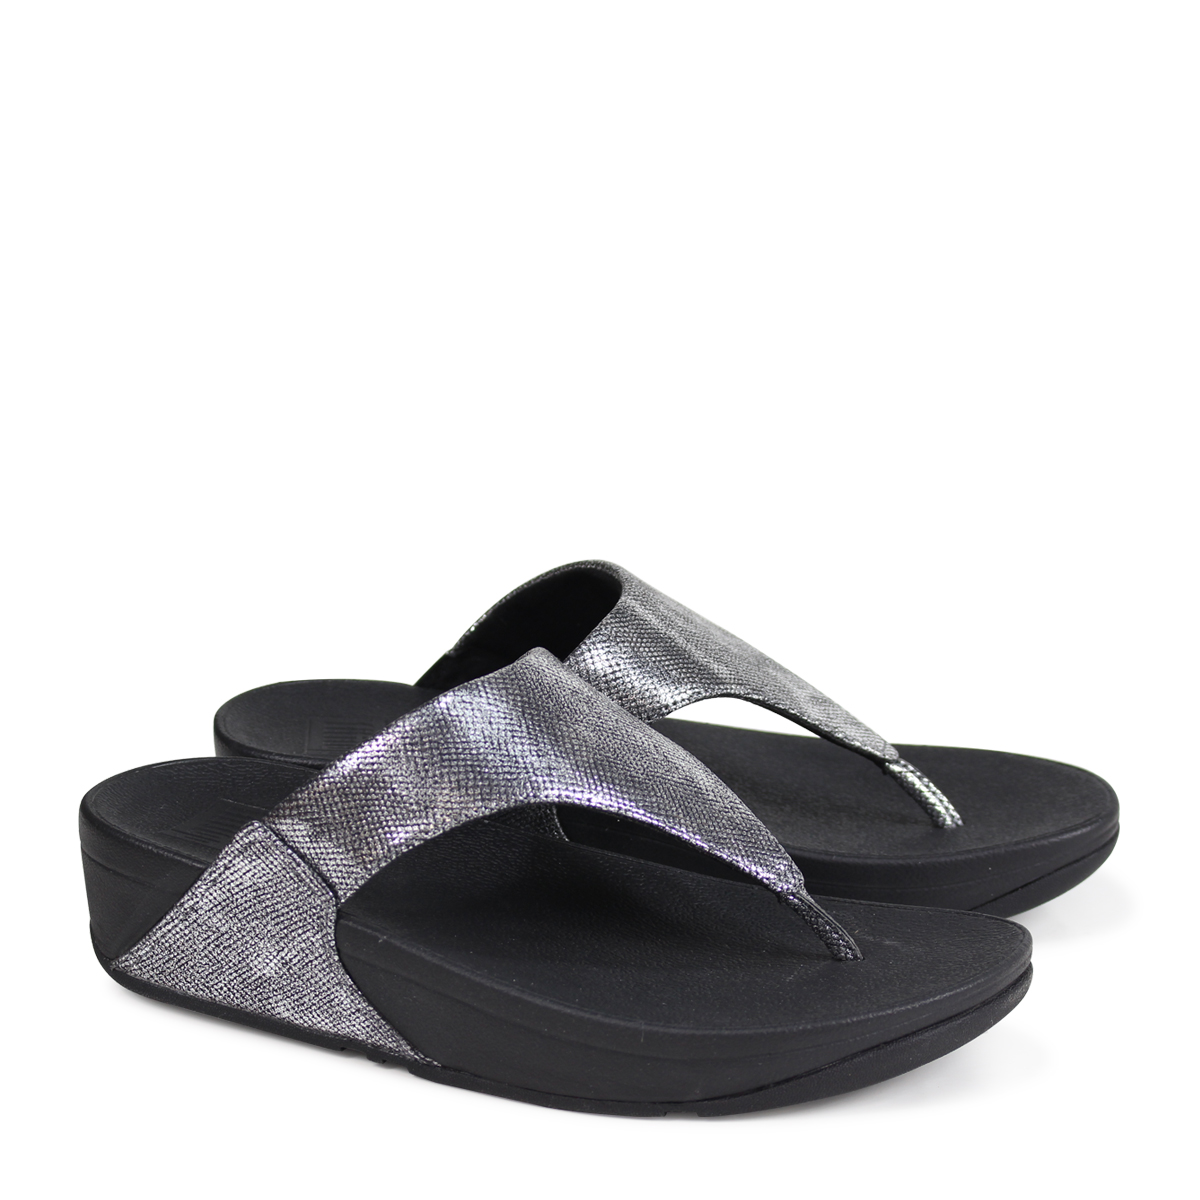 d8a6e27aae6 ALLSPORTS  FitFlop LULU TOE-THONG SANDALS SHIMMER-PRINT sandals ...